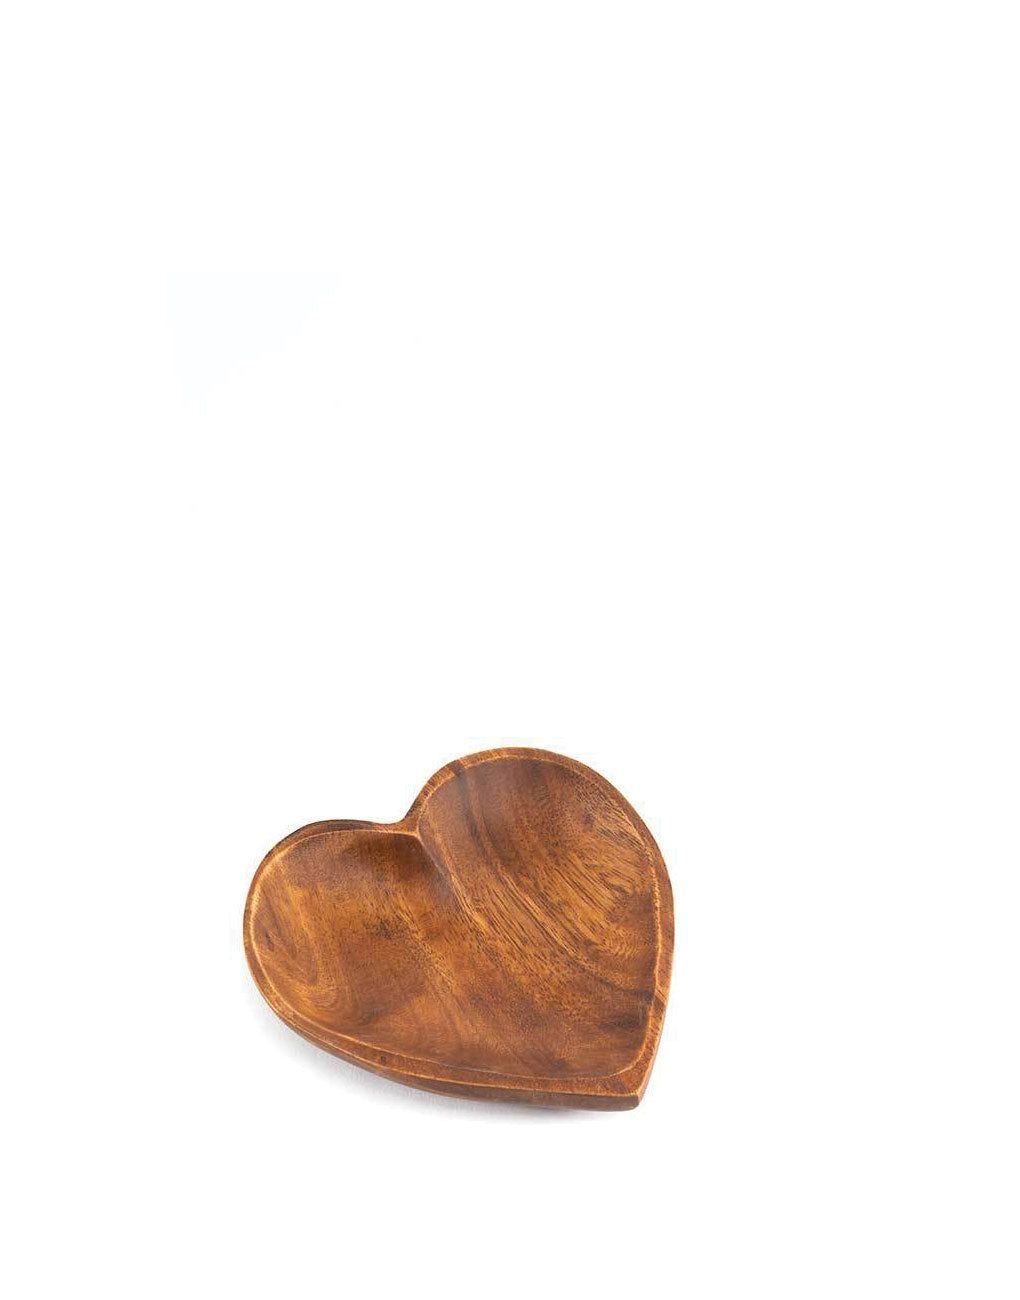 Medium Acacia Wood Heart Tray | The Little Market